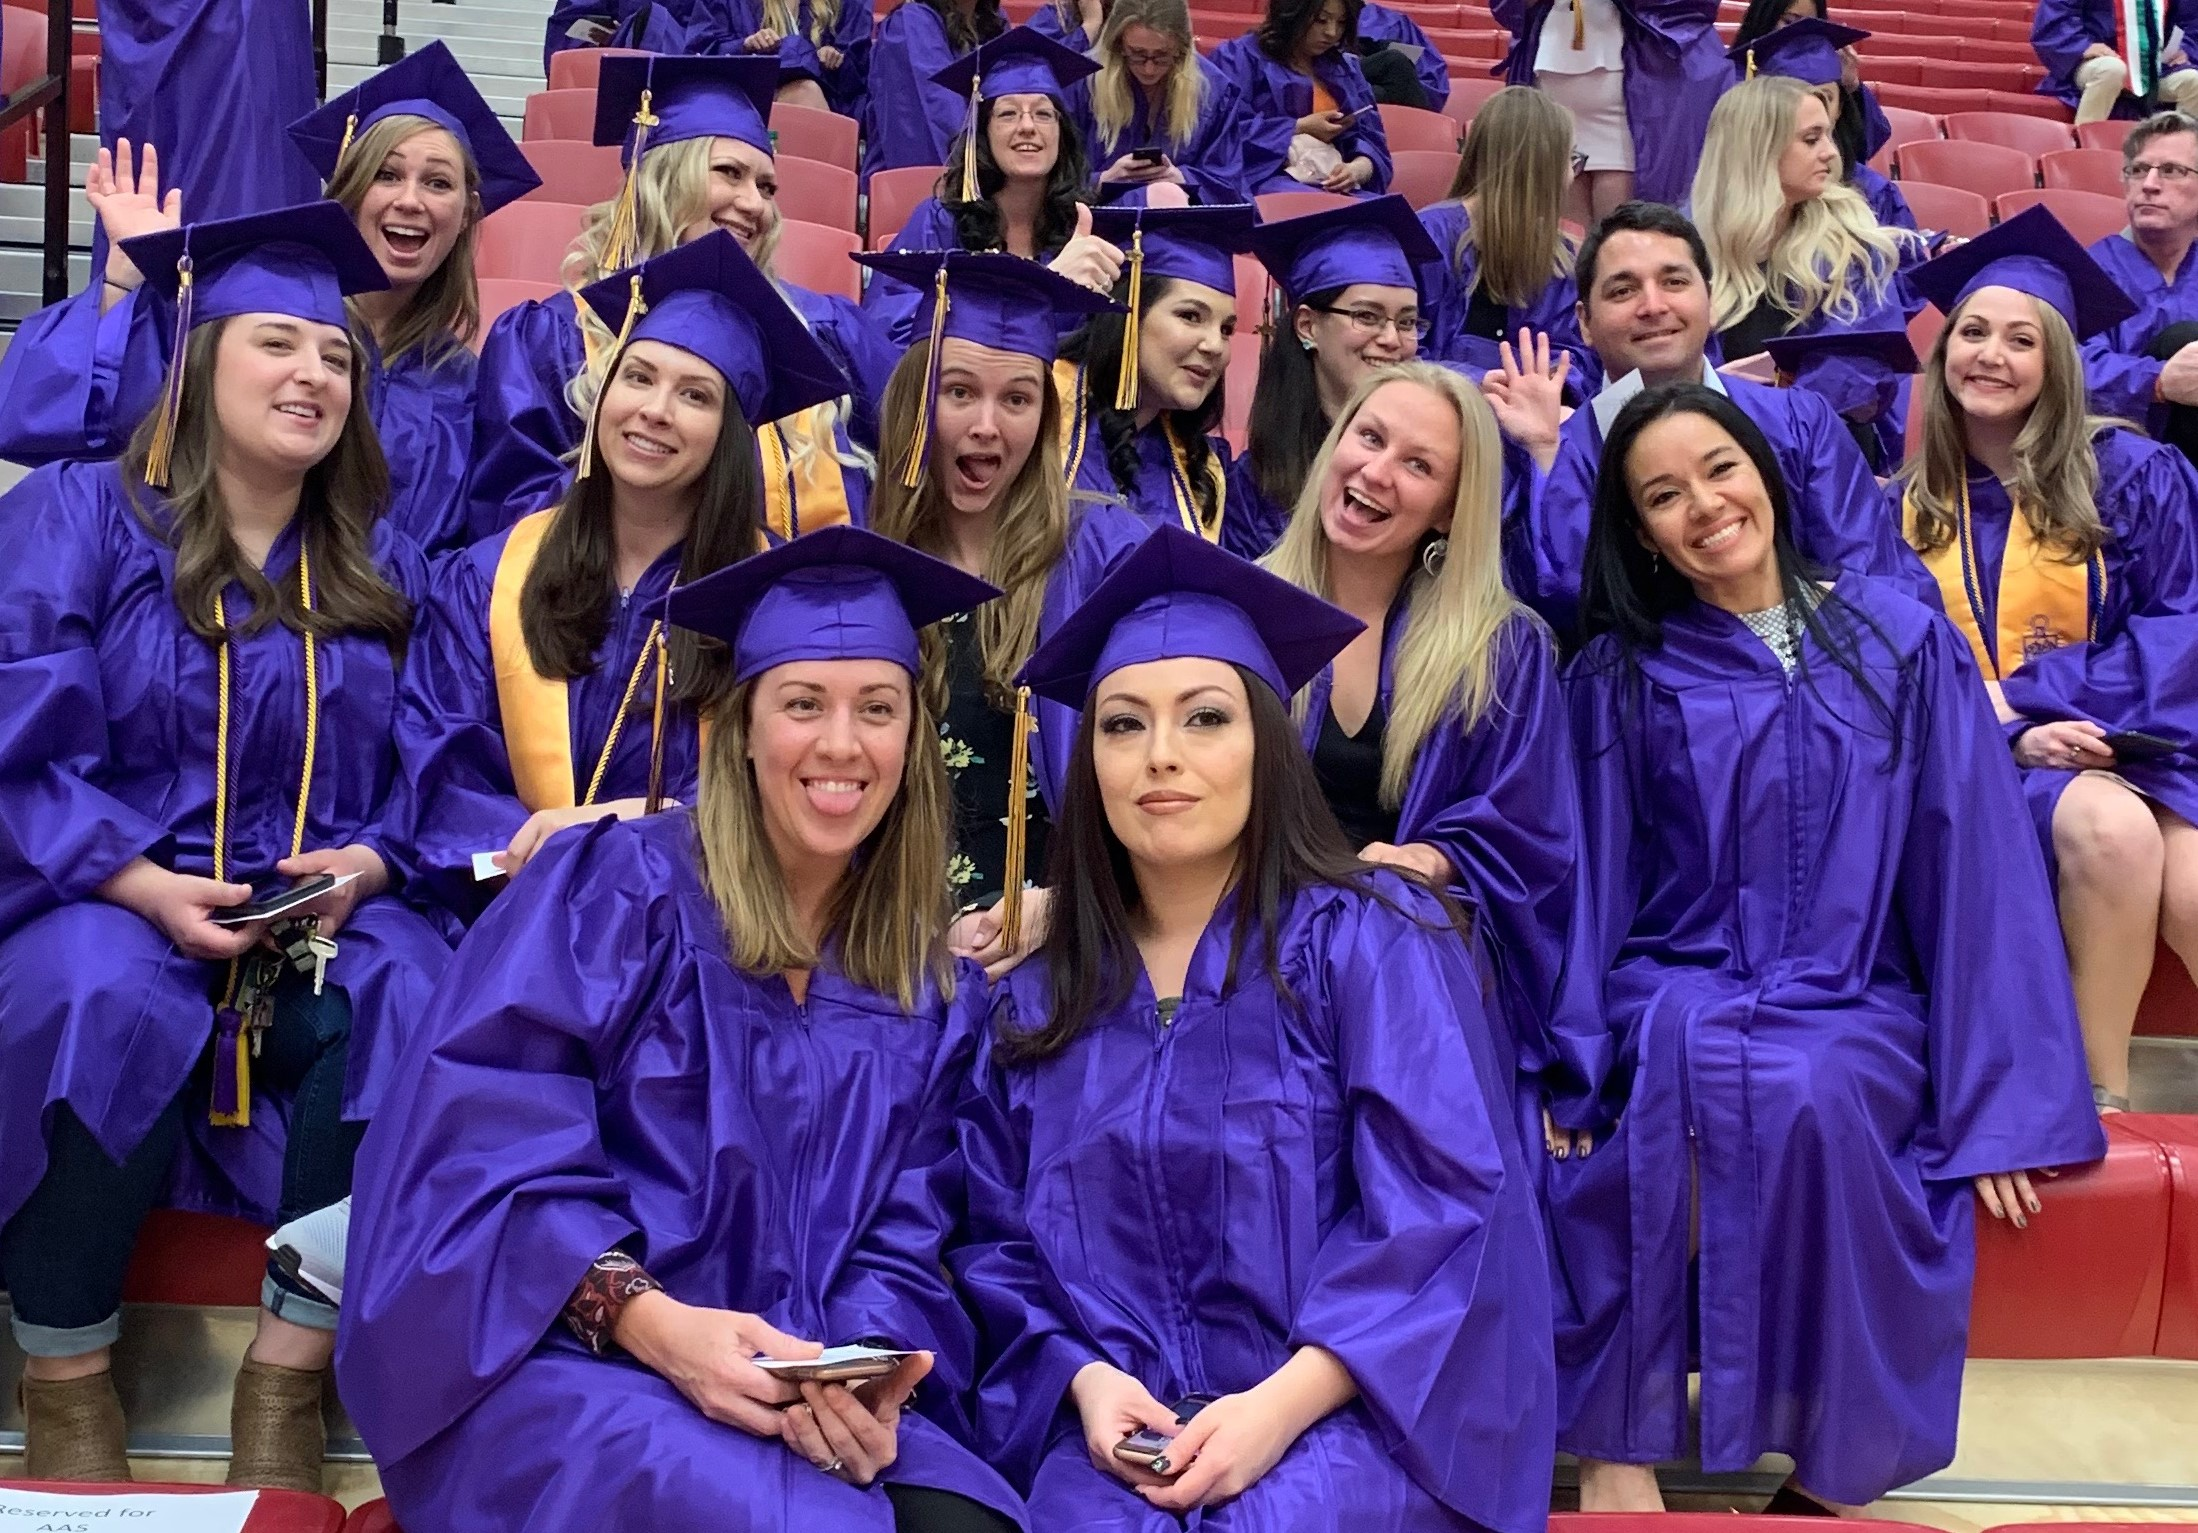 Women waiting to walk out for graduation dressed in purple